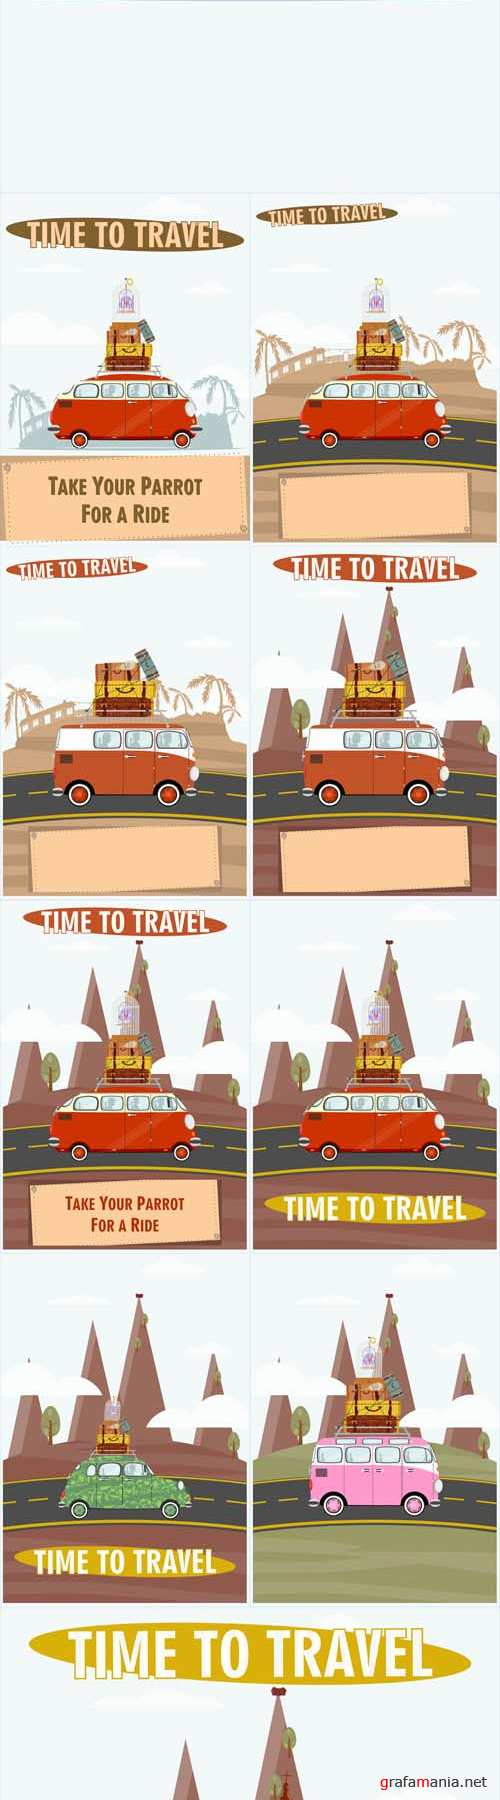 Vector Time to Travel Illustration of an Old Car on a Landscape Background